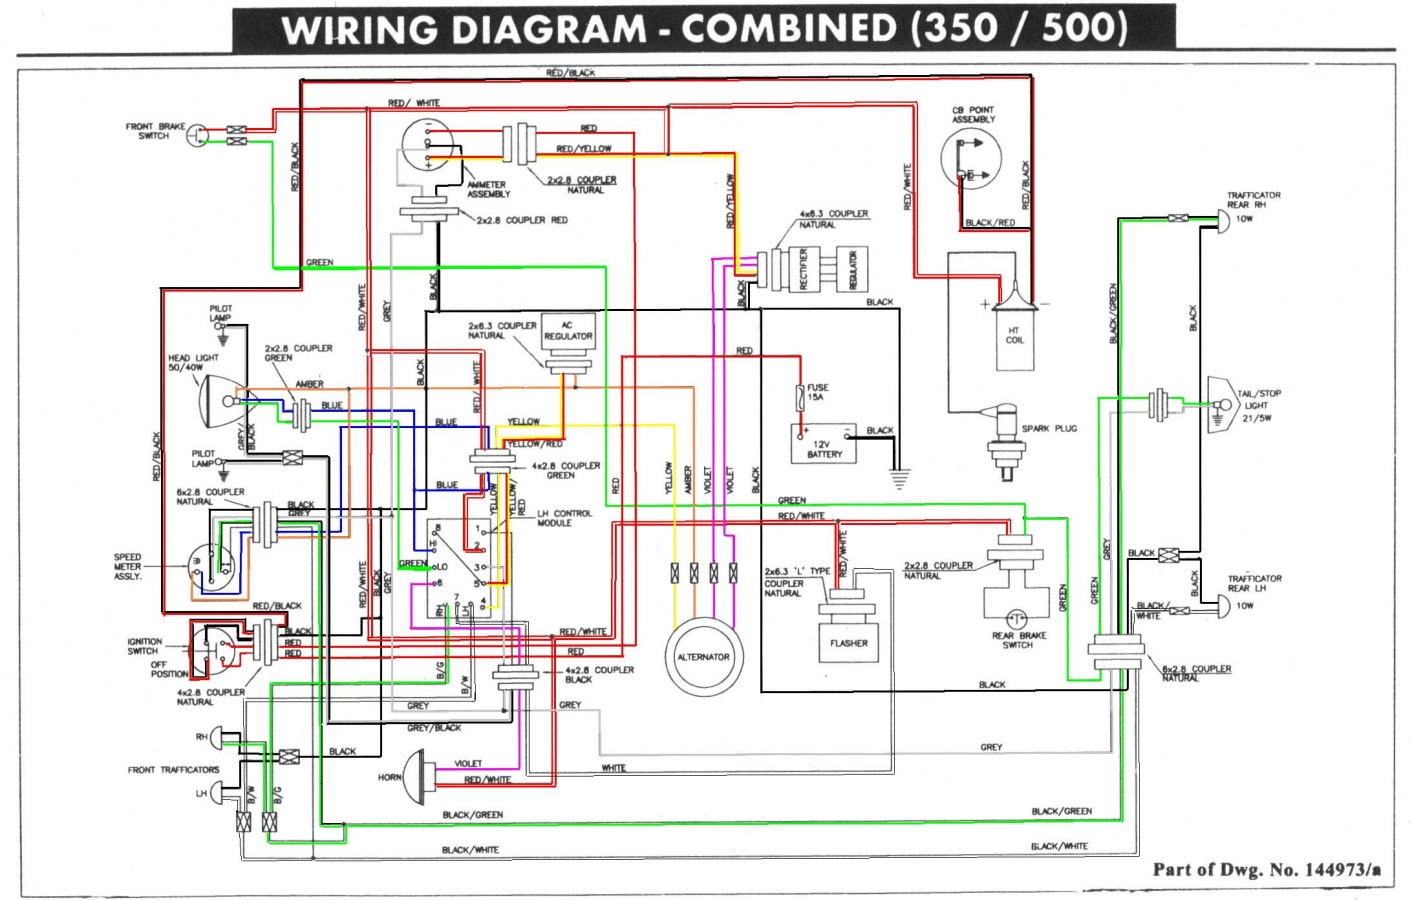 diagrams 875667 royal wiring diagrams royal enfield wiring dragster wiring diagram at bayanpartner.co